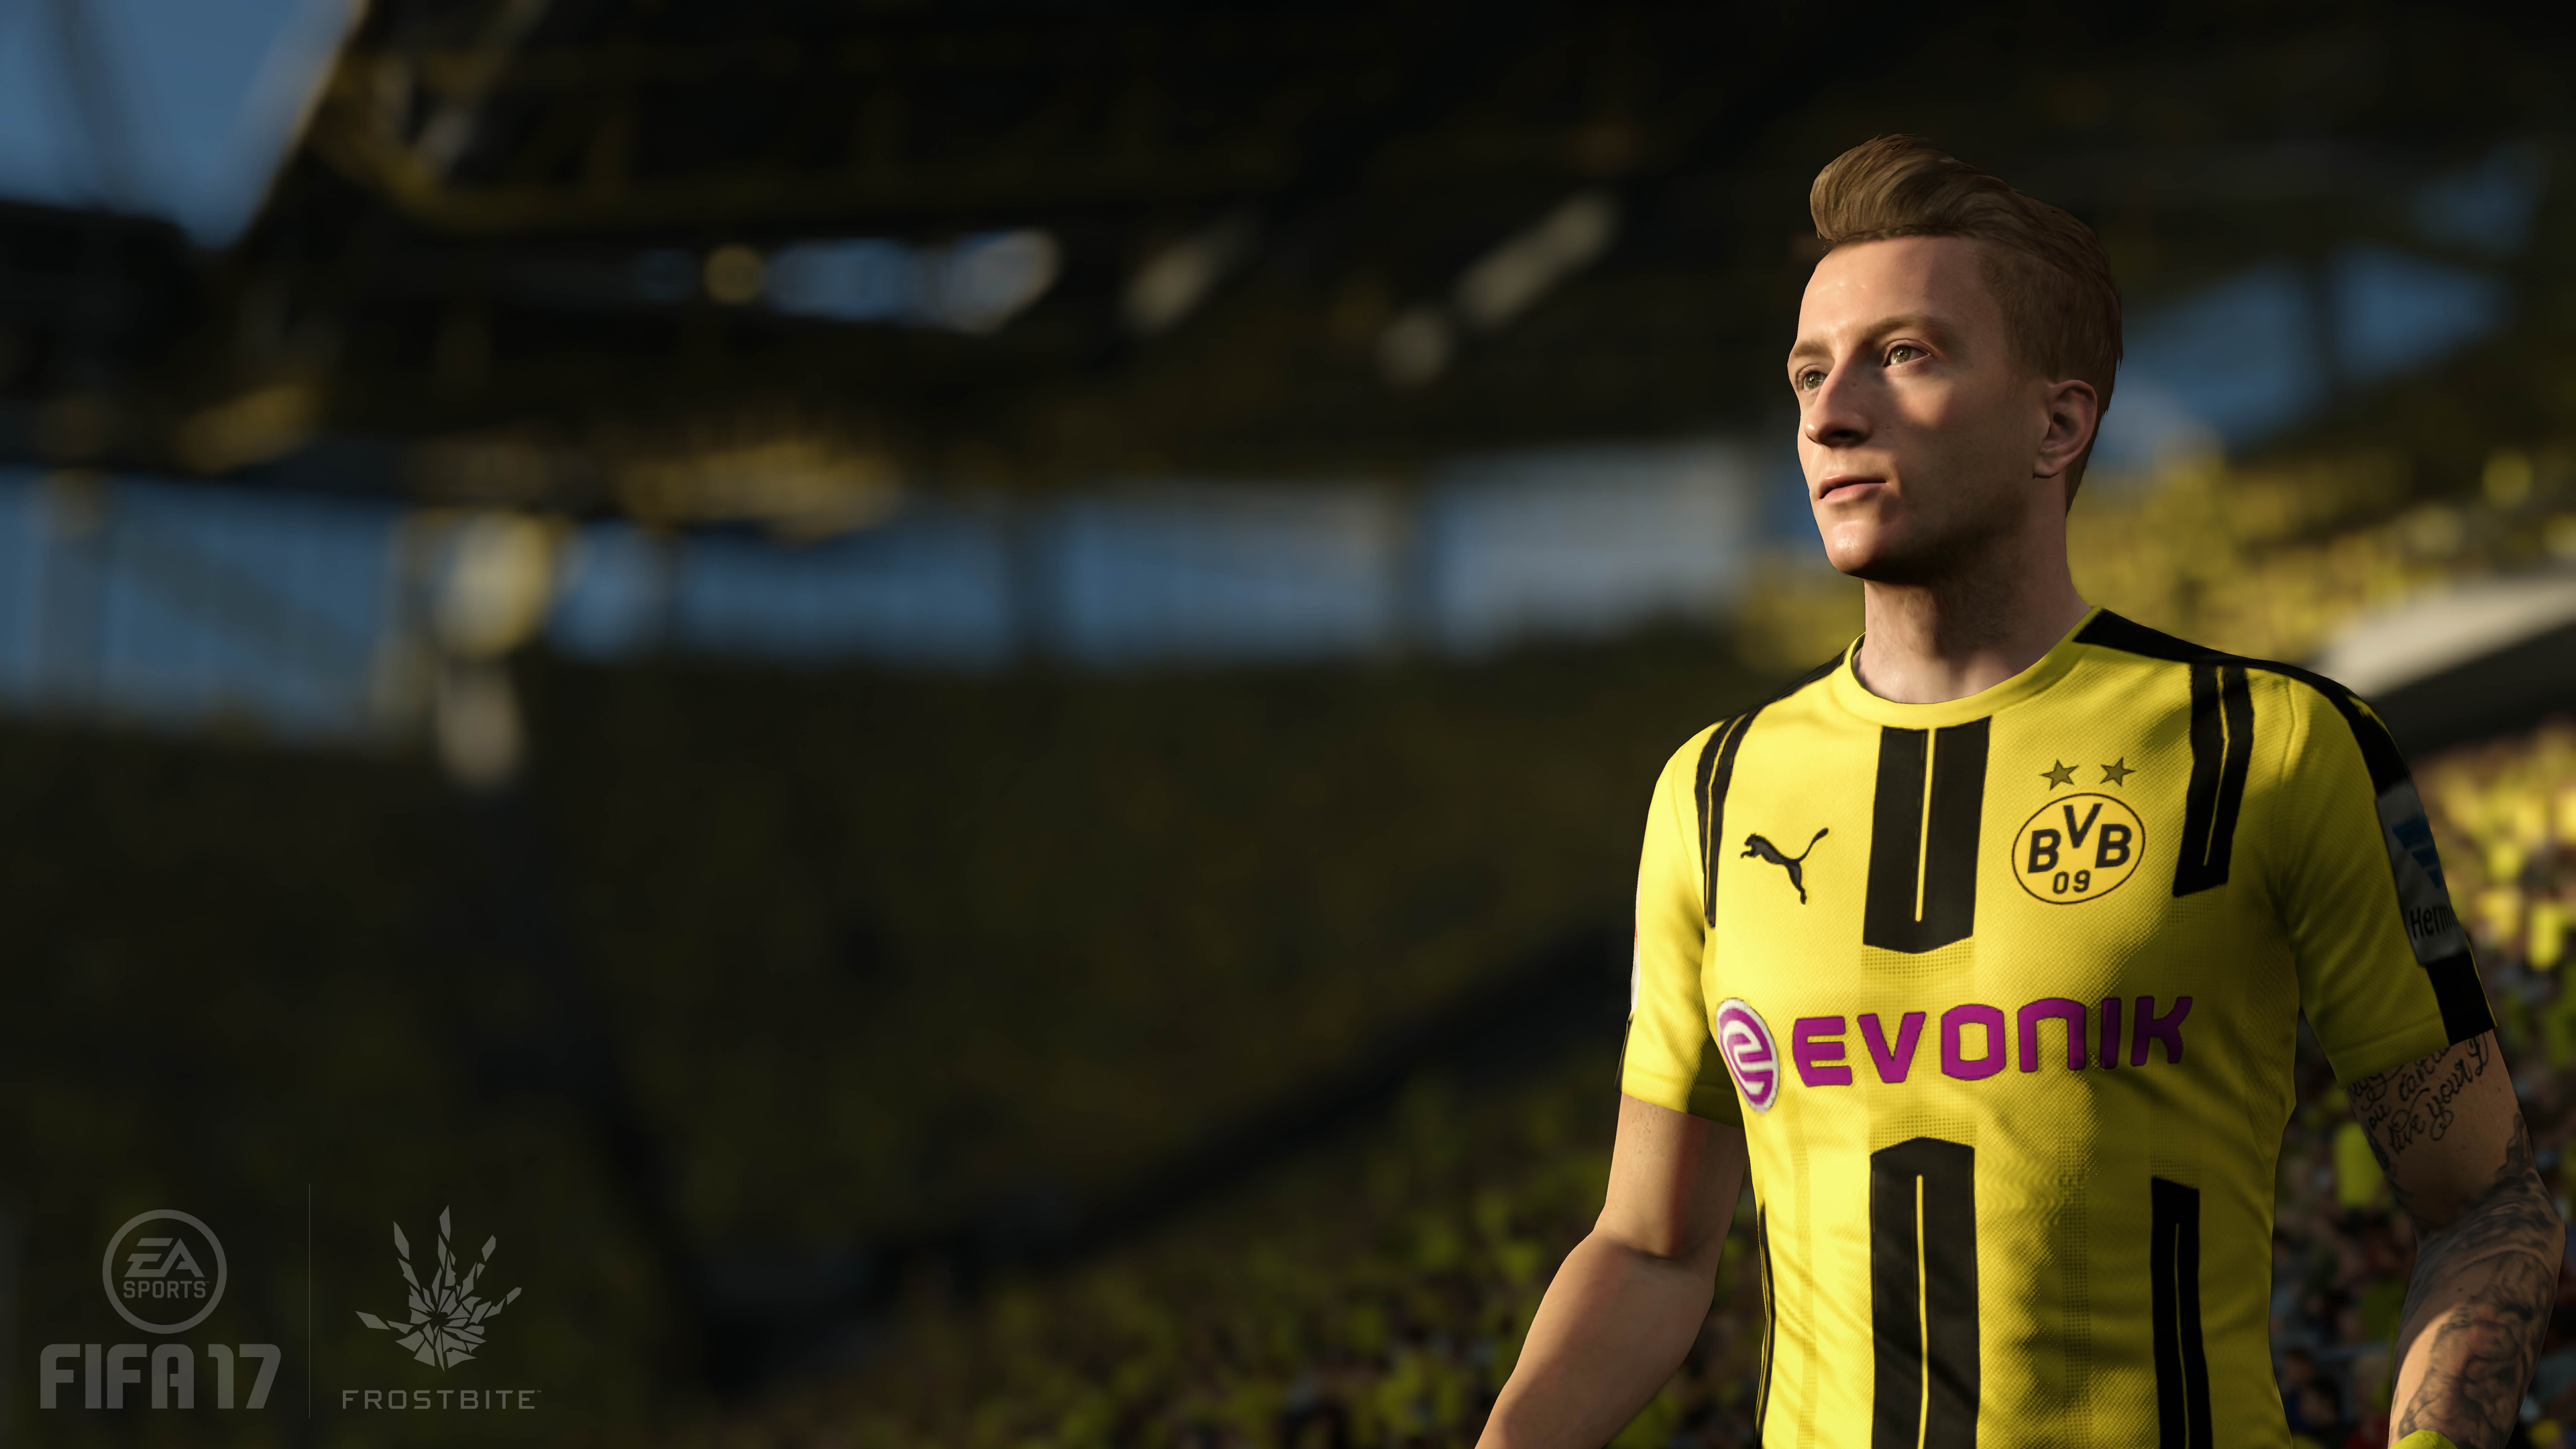 FIFA17 XB1 PS4 EAPLAY REUS HERO WM FIFA 17s New Cover Star Revealed